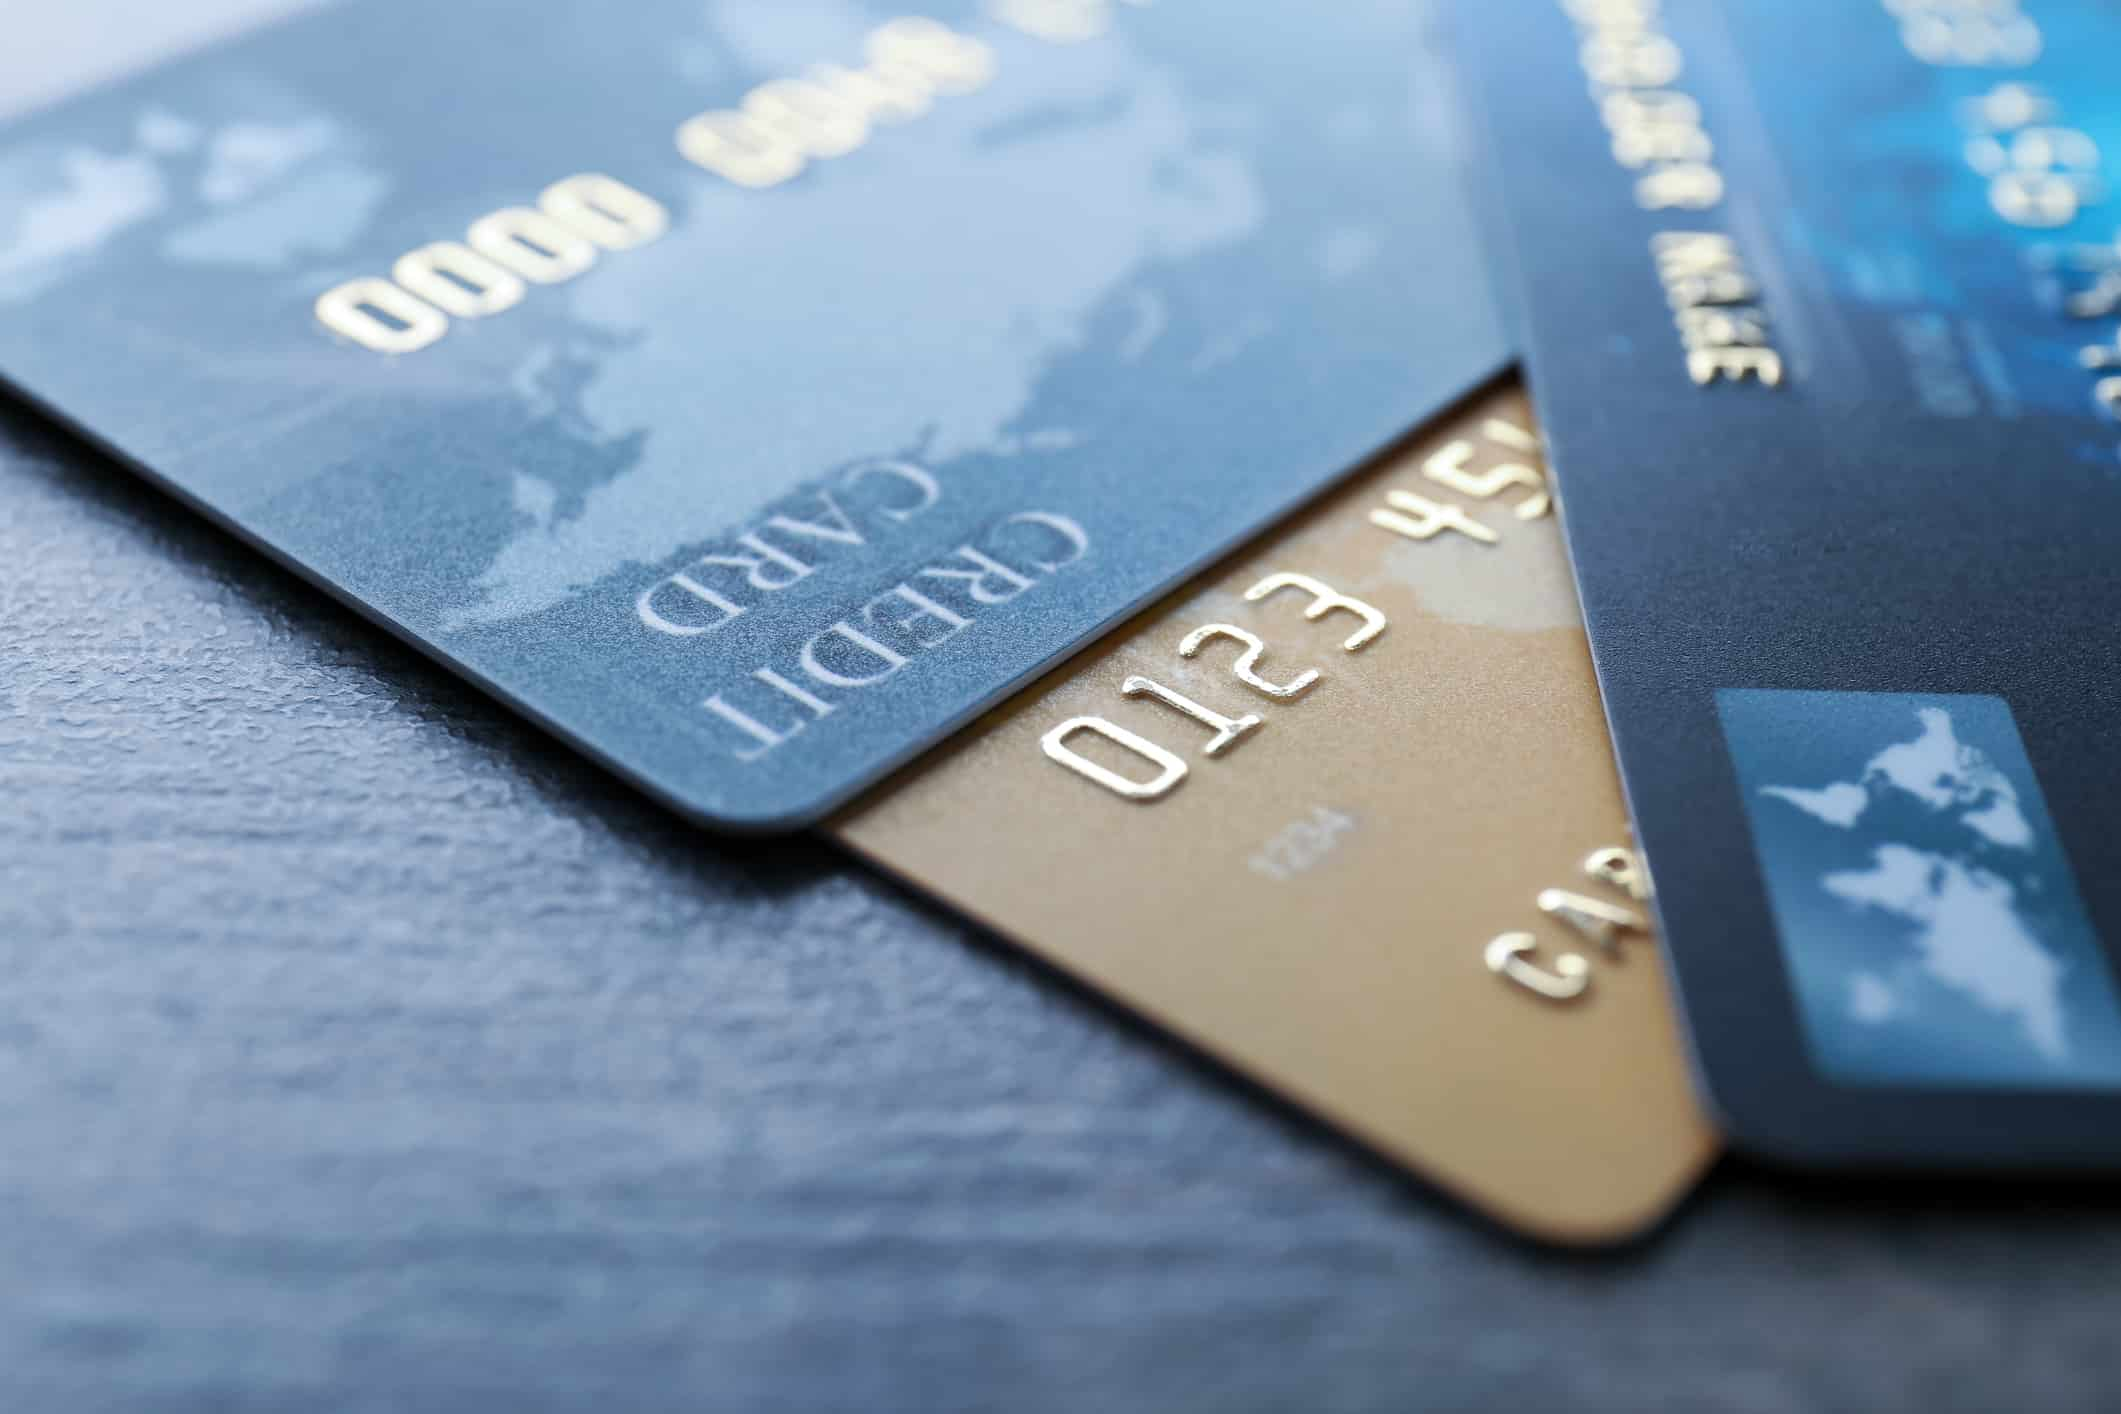 Chase Sapphire Preferred vs. Chase Sapphire Reserve: Which One Is Right For You?